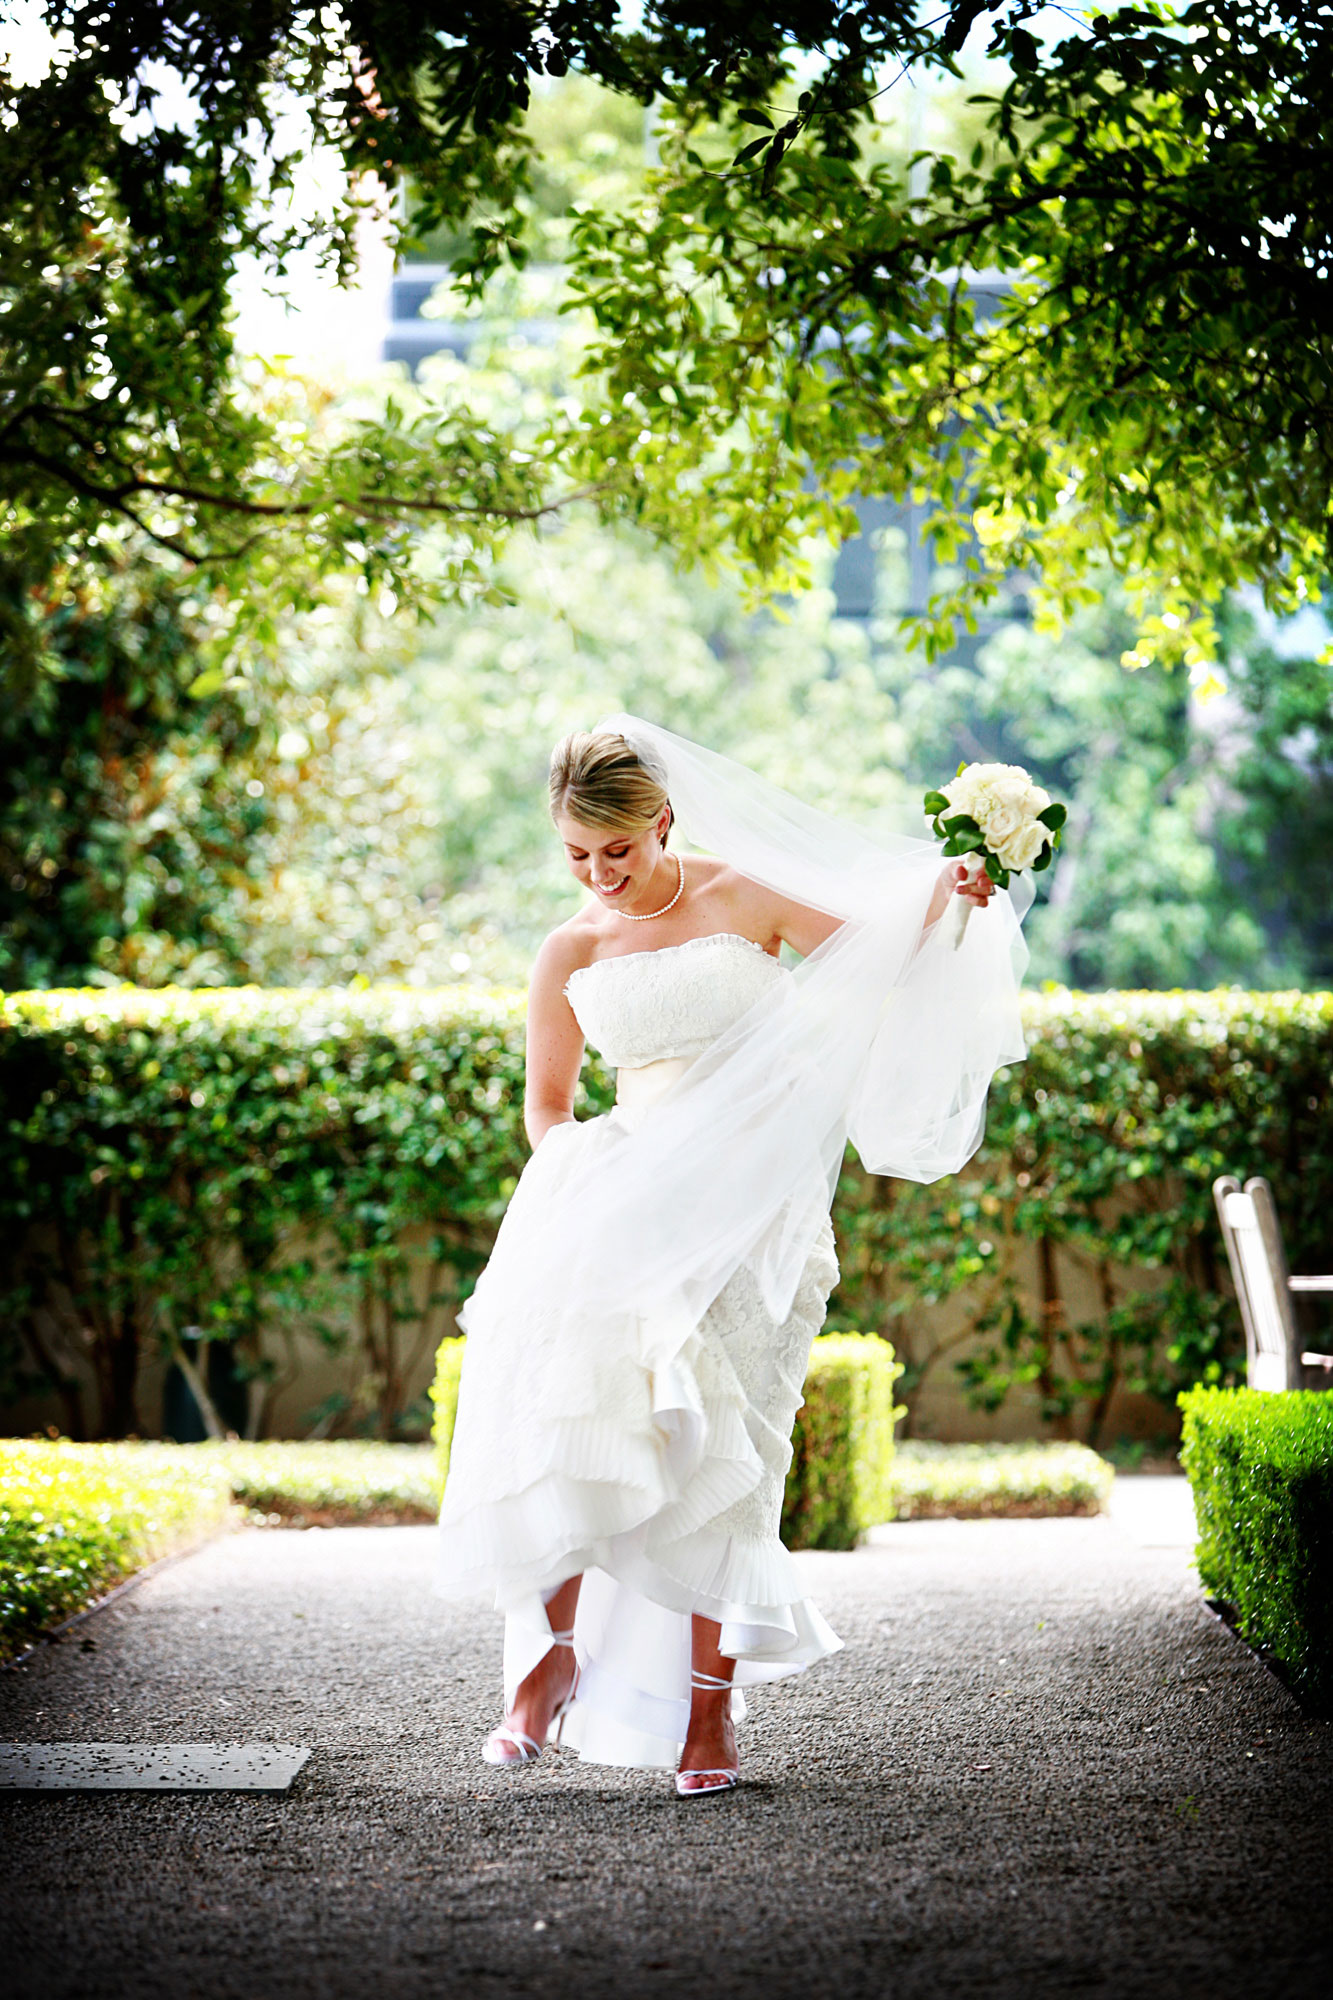 The Bride Walking Dallas Texas